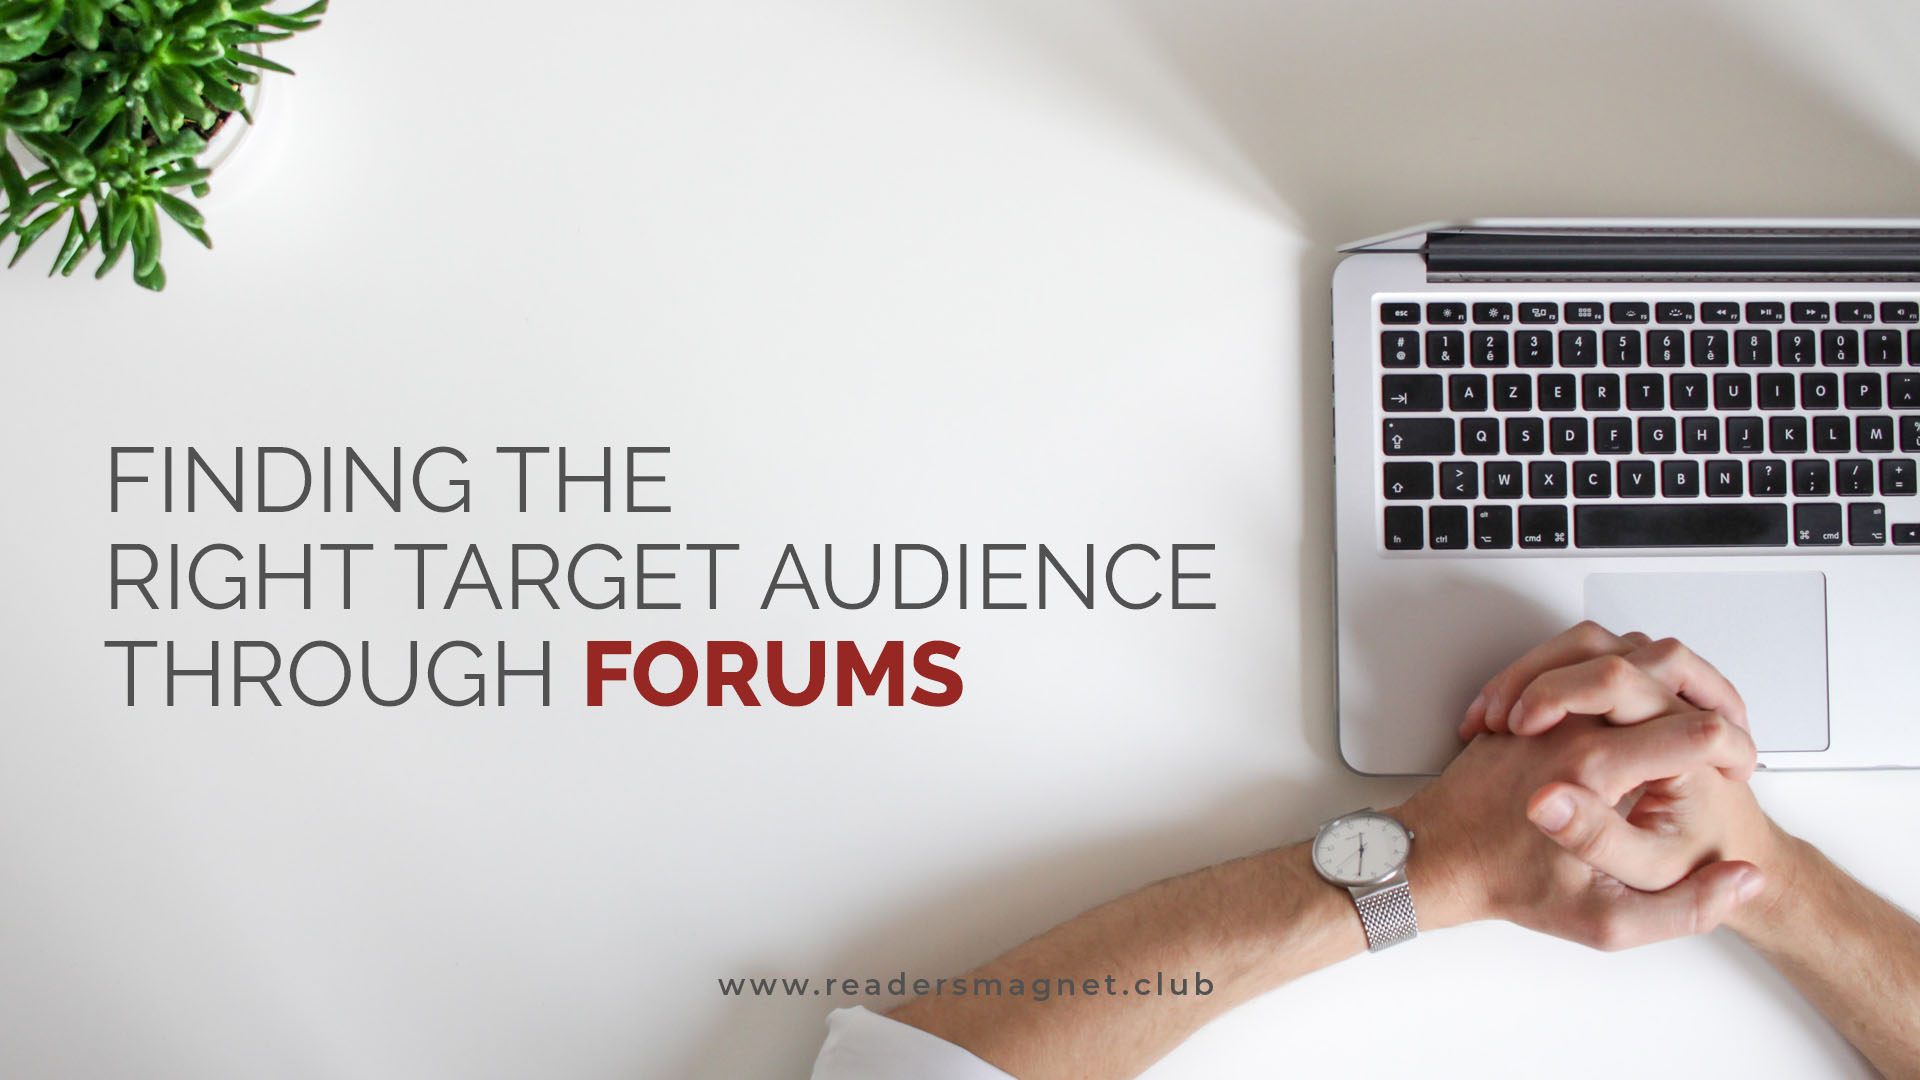 Finding the Right Target Audience Through Forums